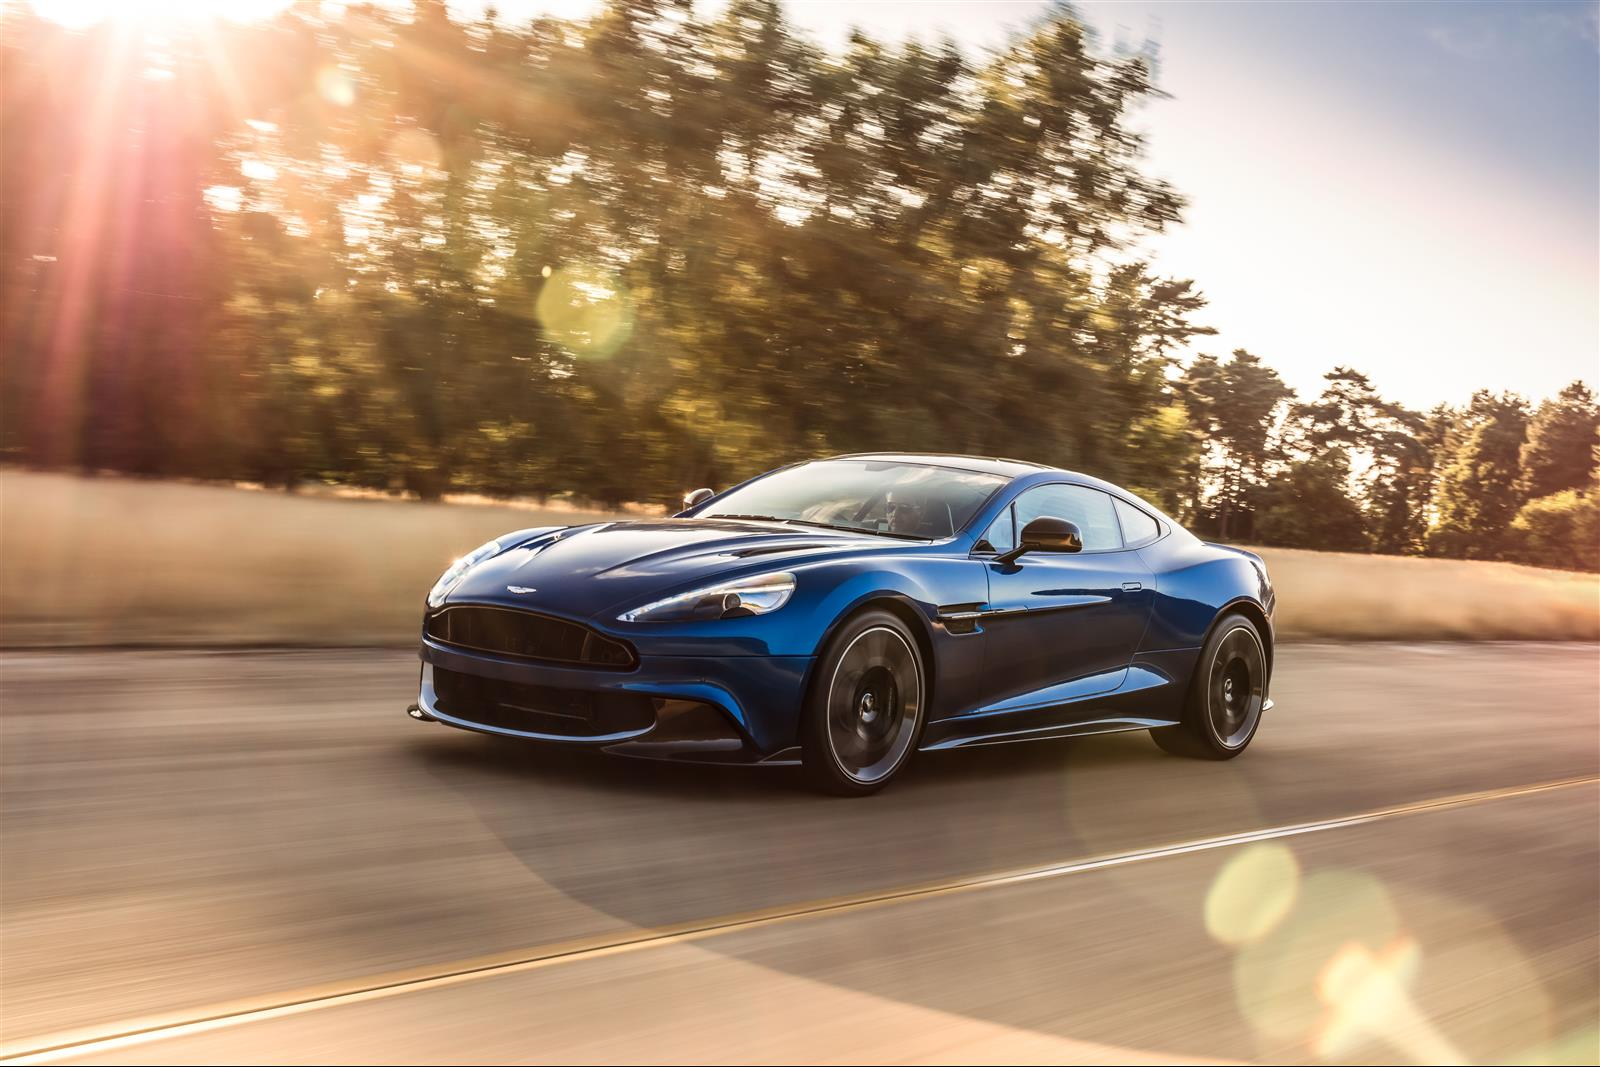 Aston Martin Vanquish S driving on the road.